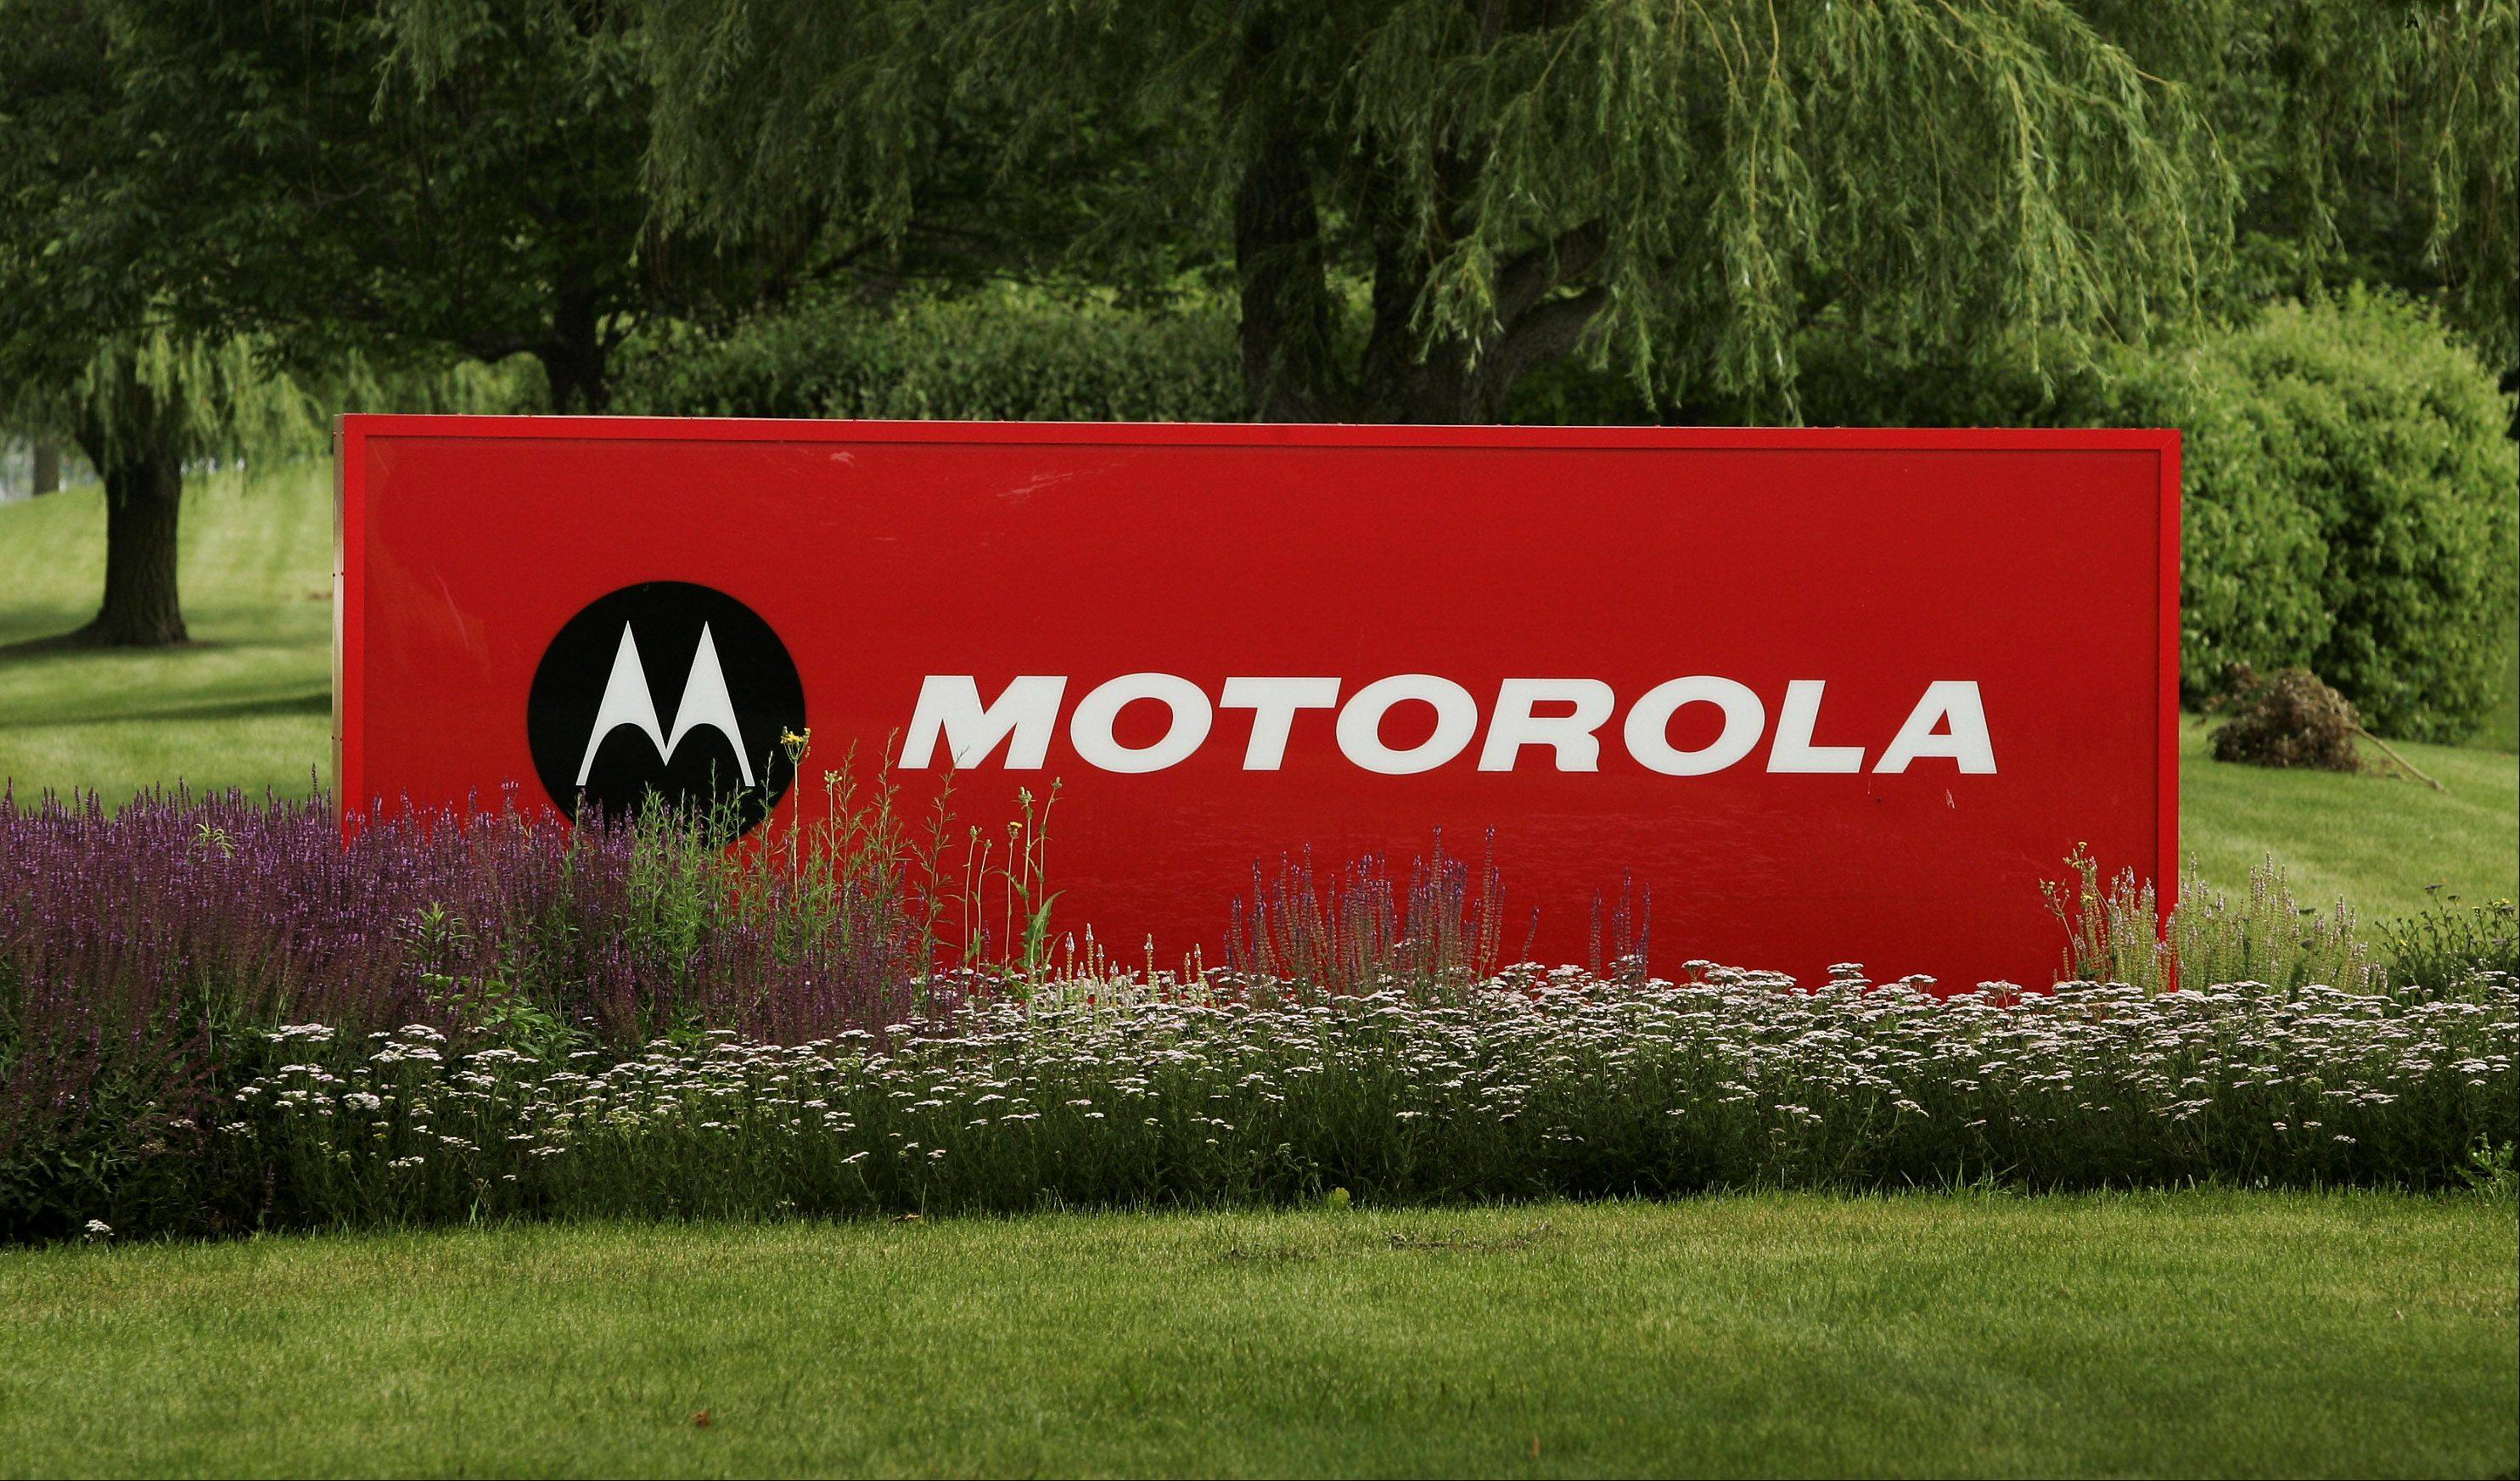 DAILY HERALD/Gilbert R. Boucher IILibertyville-based Motorola Mobility offered to pay 33 cents for every phone that uses Microsoft's ActiveSync software to avoid an import ban by the U.S. International Trade Commission on phones that use the software.